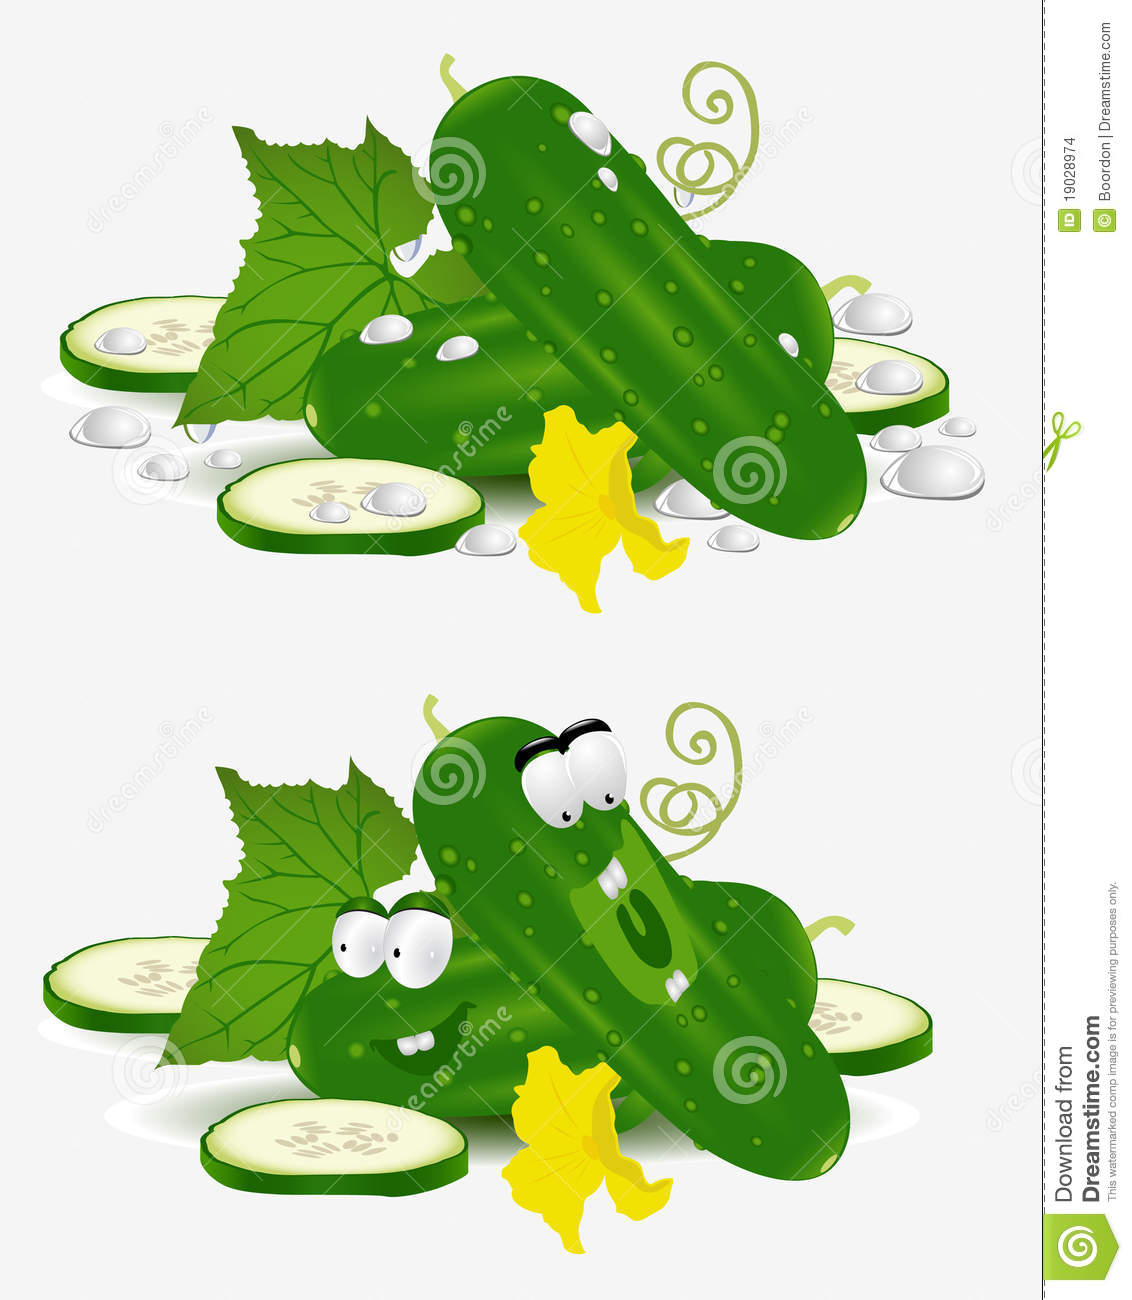 Cucumber Vegetable Character Stock Images - Image: 19028974: dreamstime.com/stock-images-cucumber-vegetable-character-image19028974